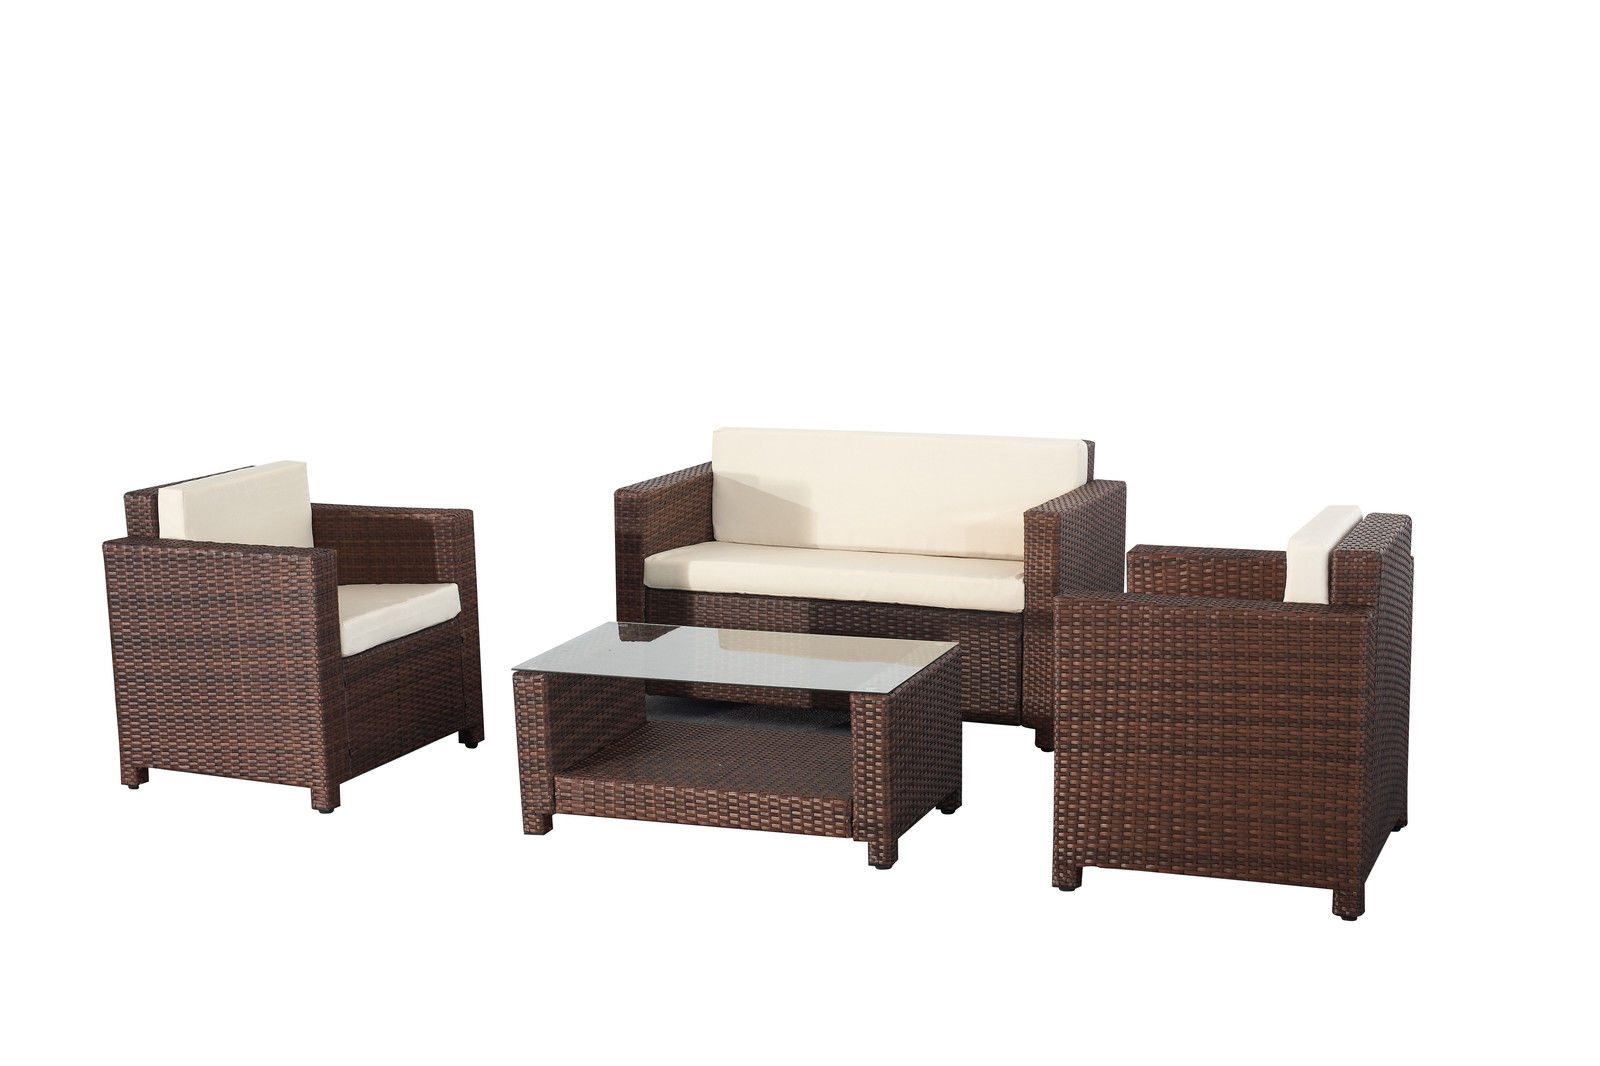 rome 4pcs weatherproof outdoor furniture set durable rattan brown